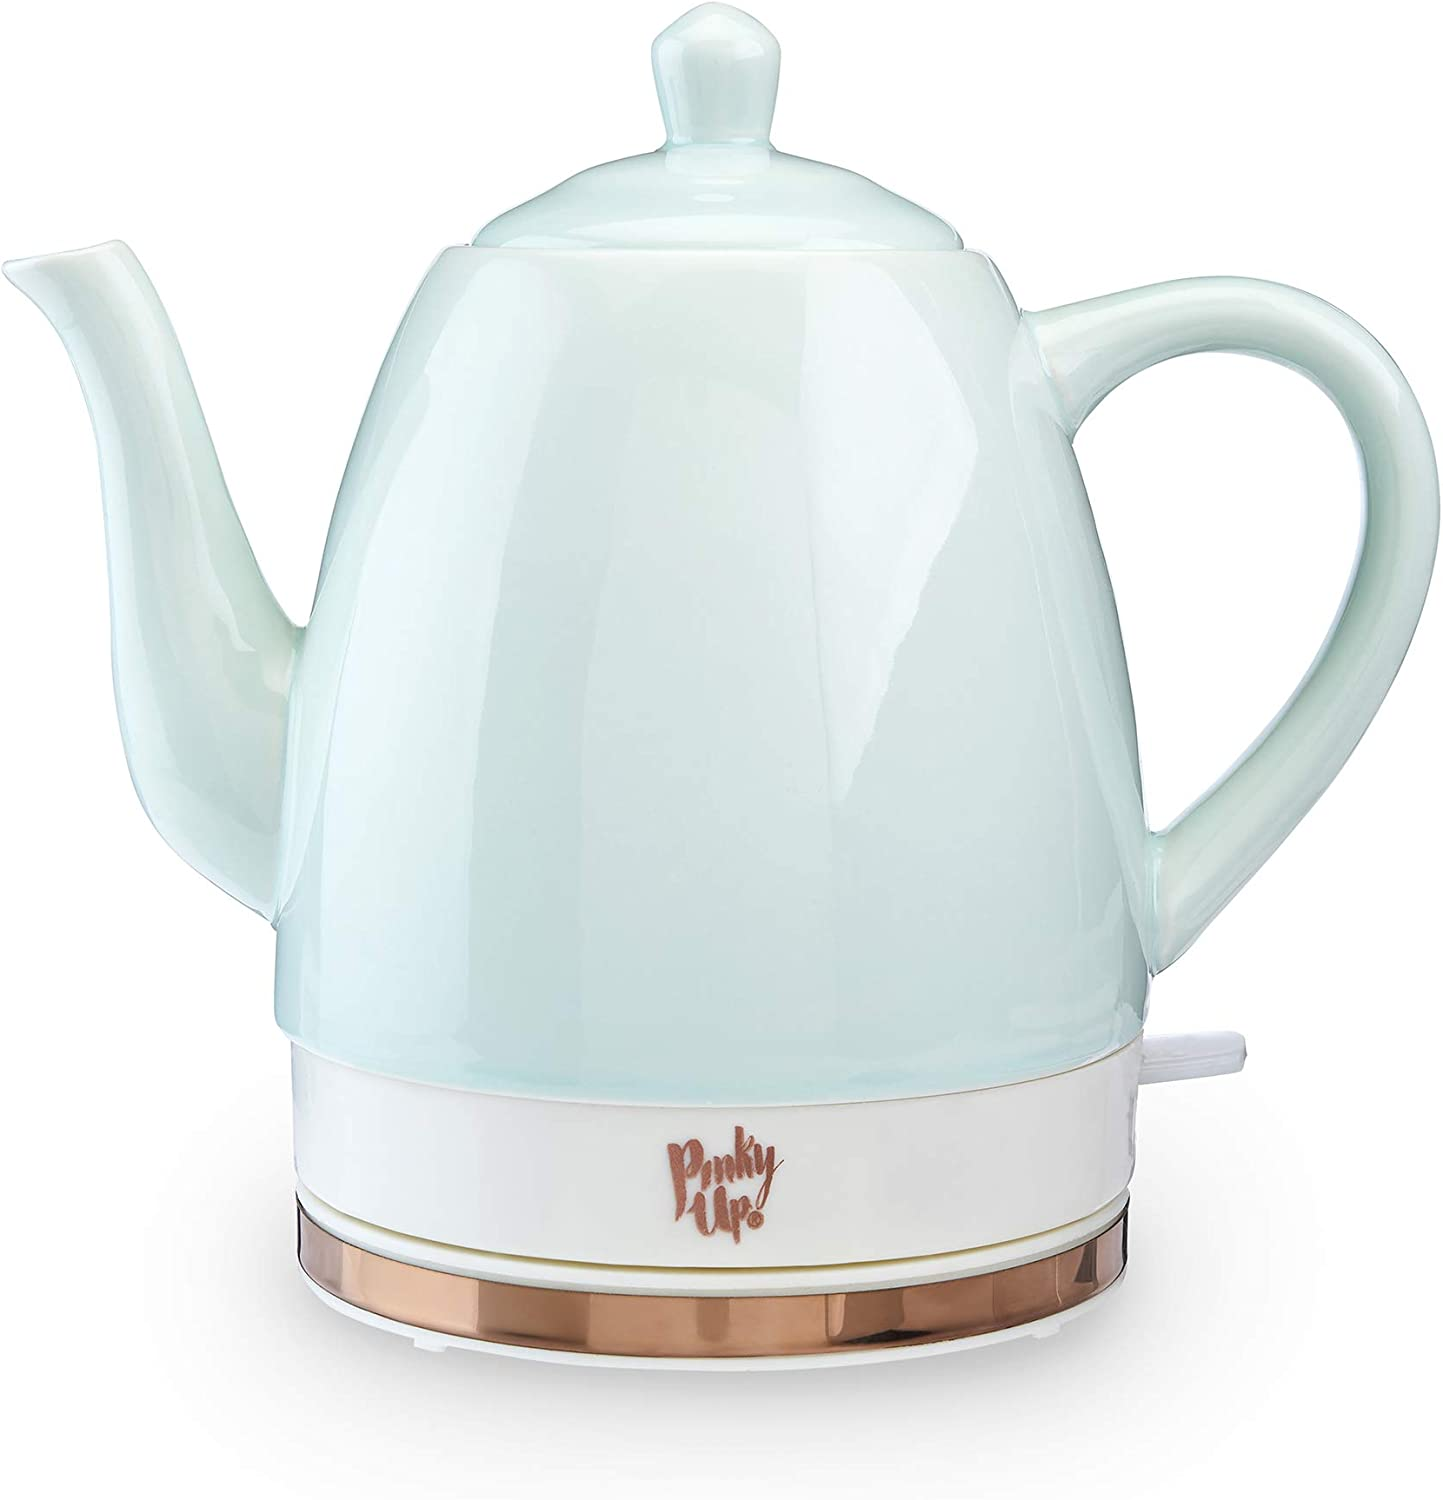 Pinky Up Glassware Electric Tea Kettle